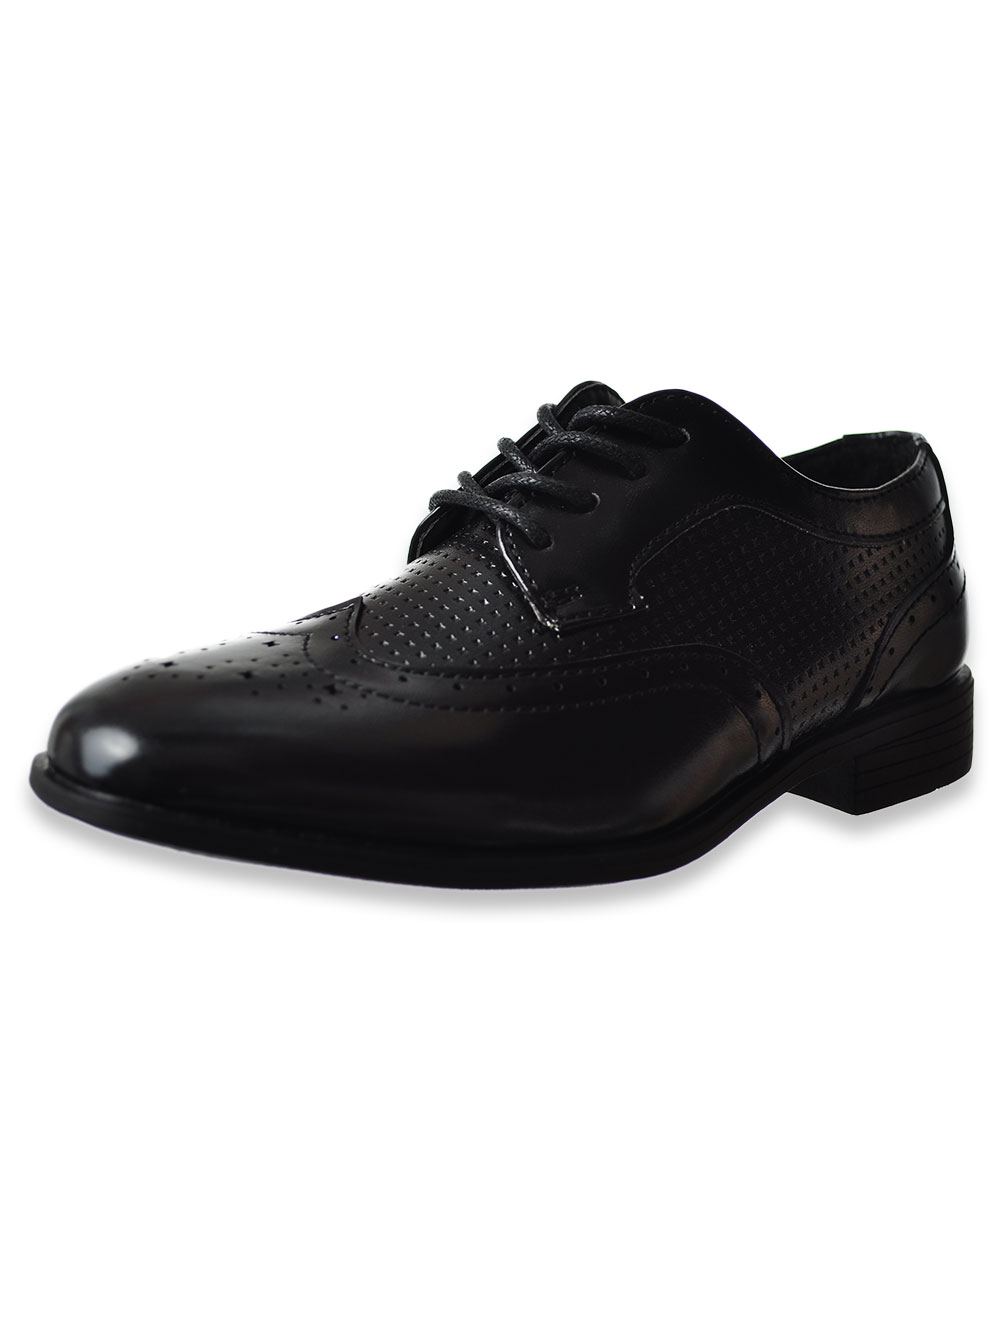 Dress Shoes Wingtip Design